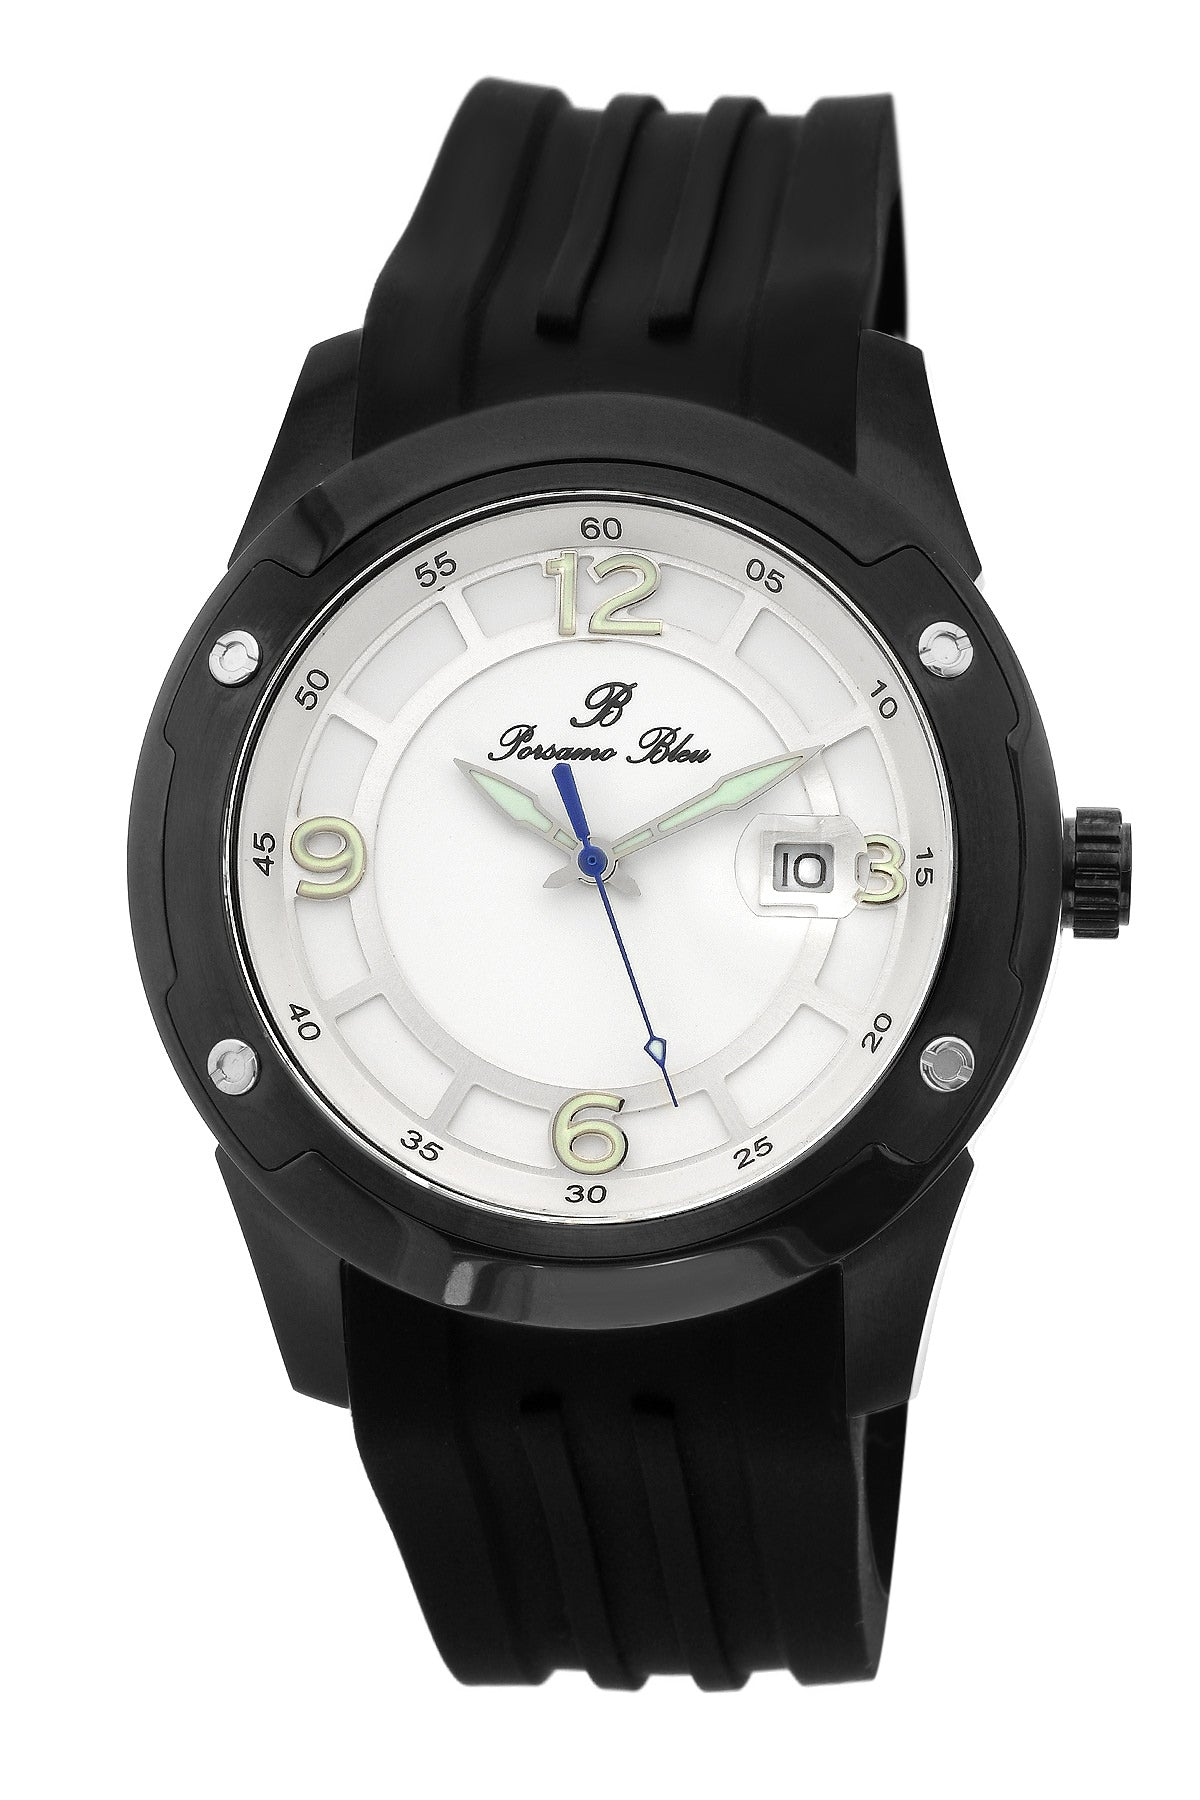 Porsamo Bleu Tokyo luxury Automatic men's watch, silicone strap, black, white 172CTOR